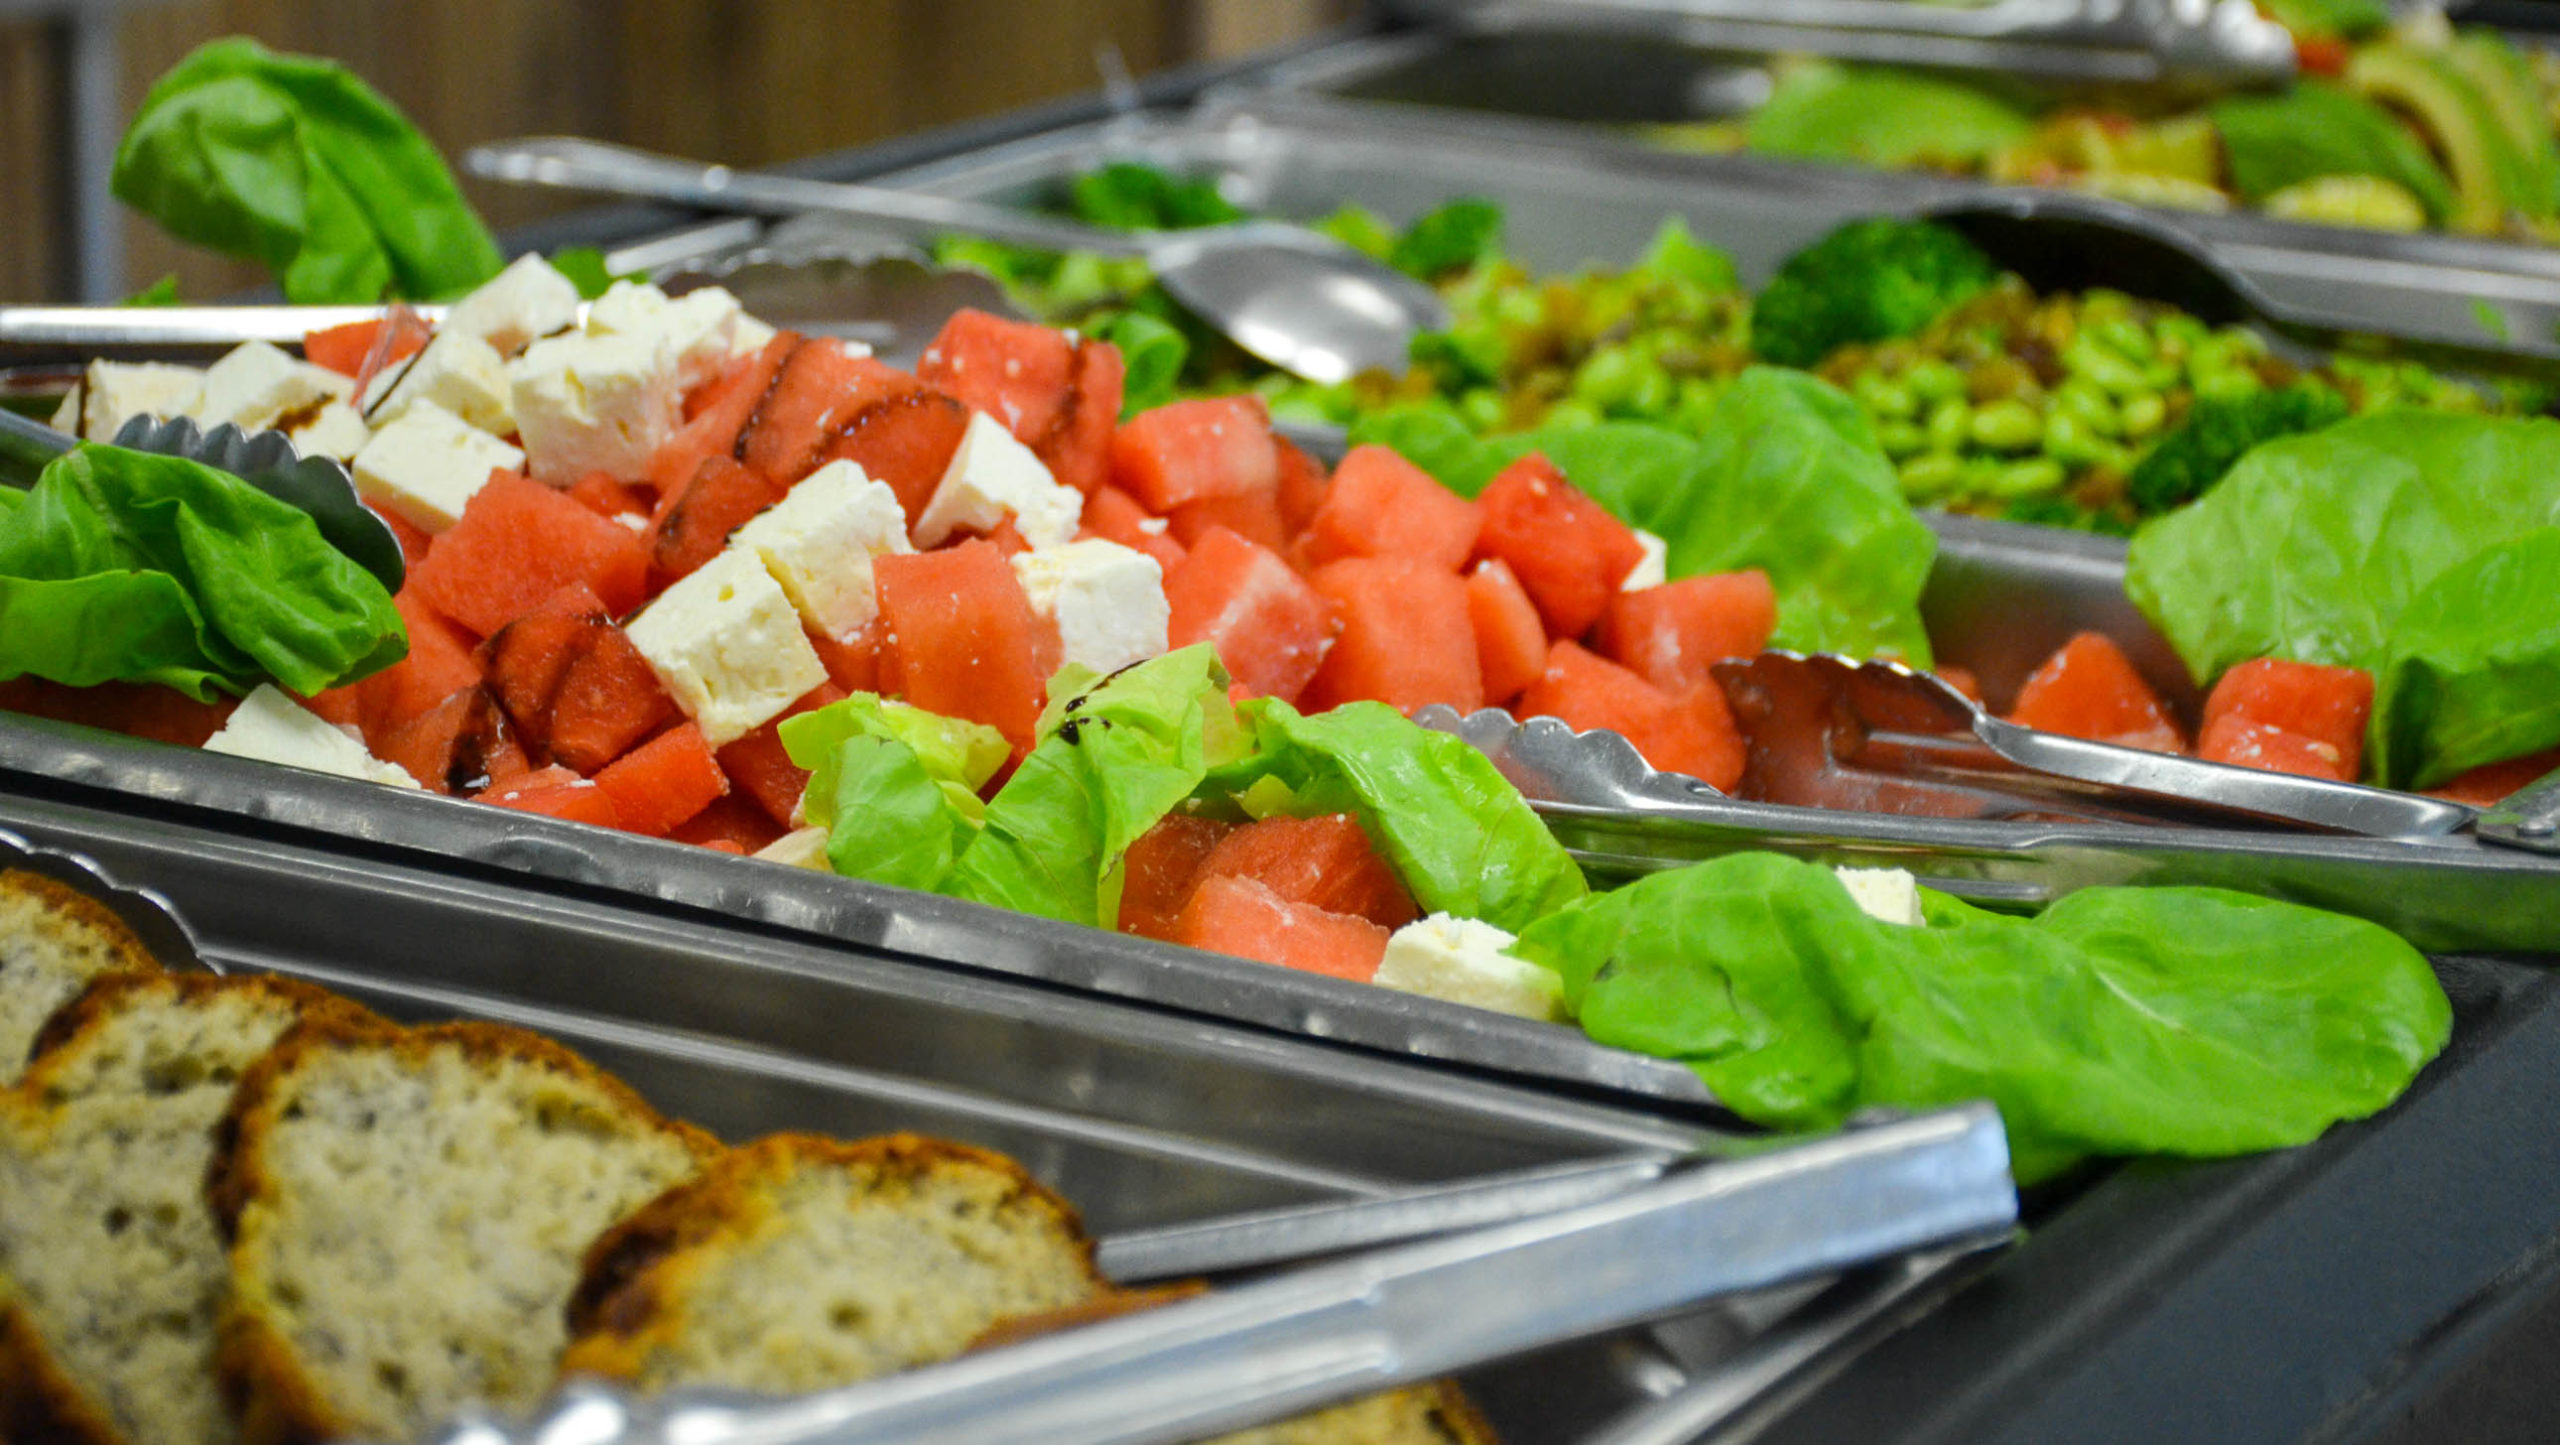 Buffet of salad and bread